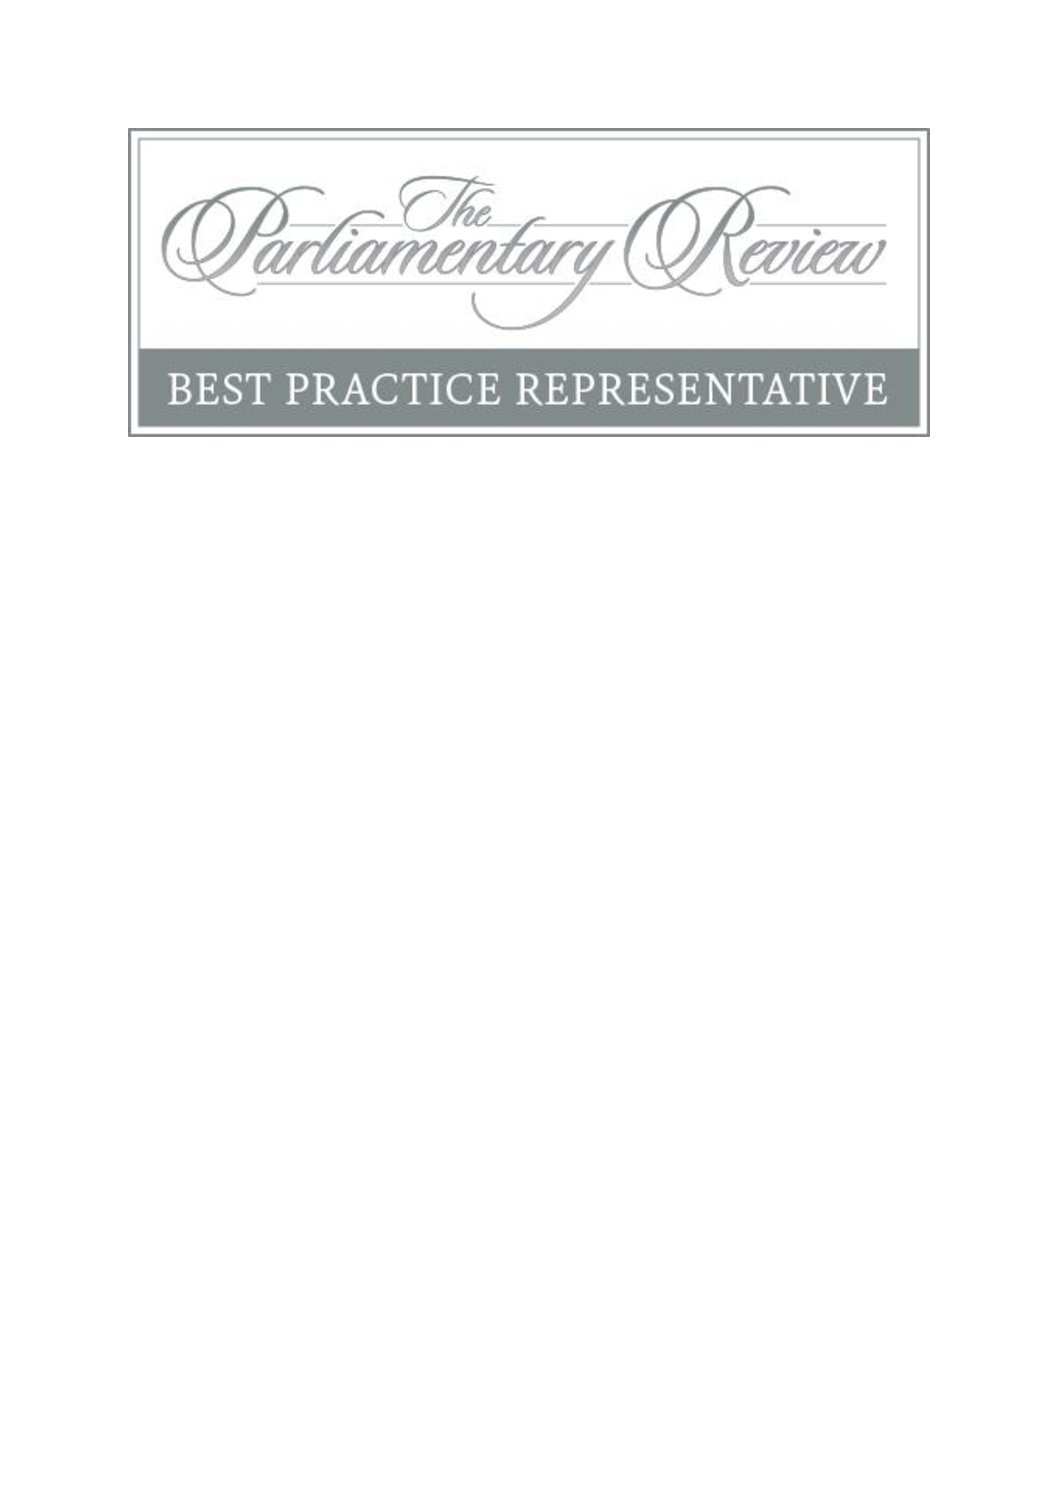 Glebe House featured in The Parliamentary Review